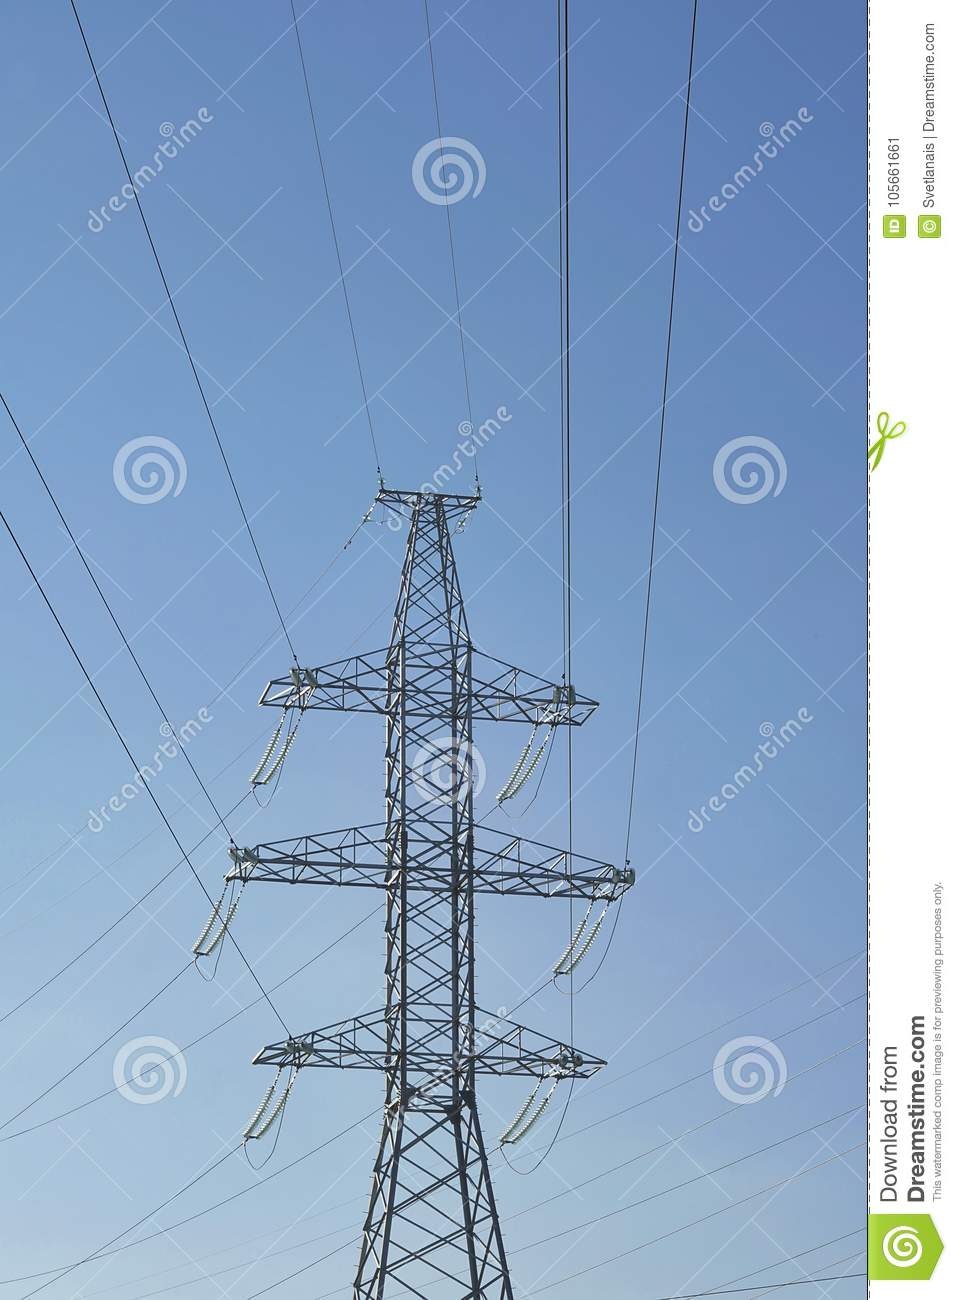 High metal tower. Power line with conductors, withstand surges due to switching lightning